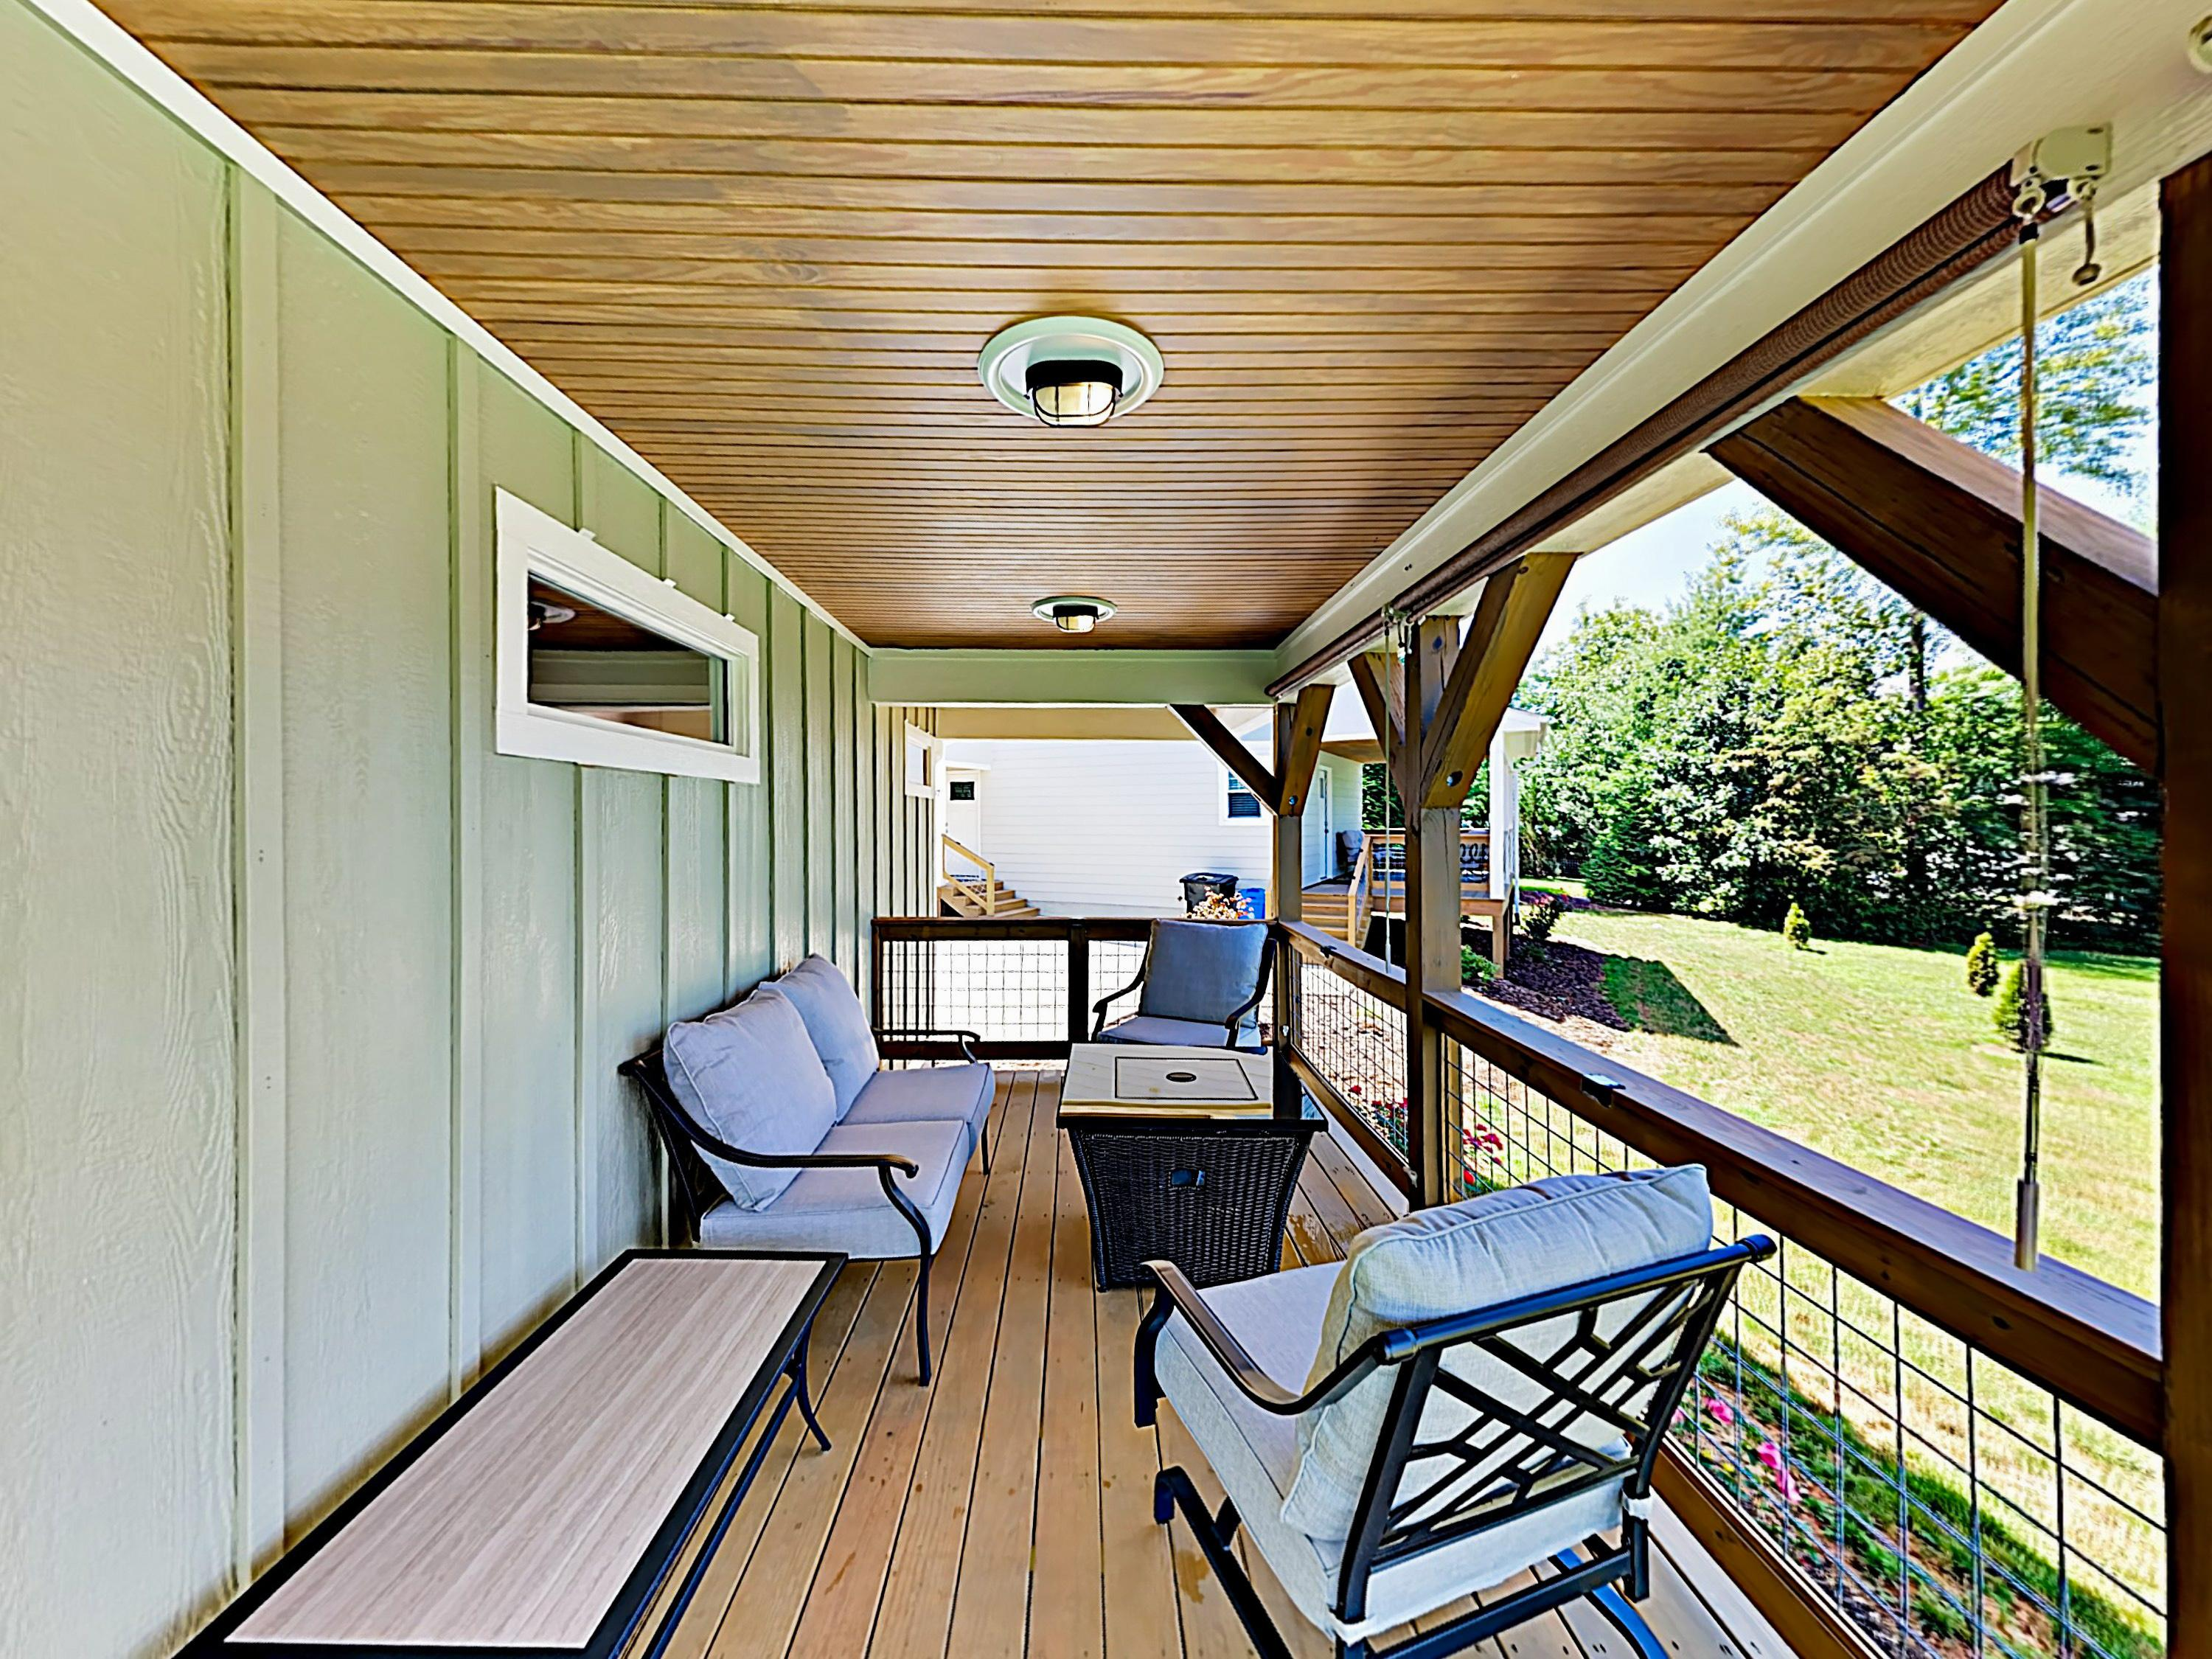 The covered back deck is equipped with cushioned seating for 4 and a gas fire pit.